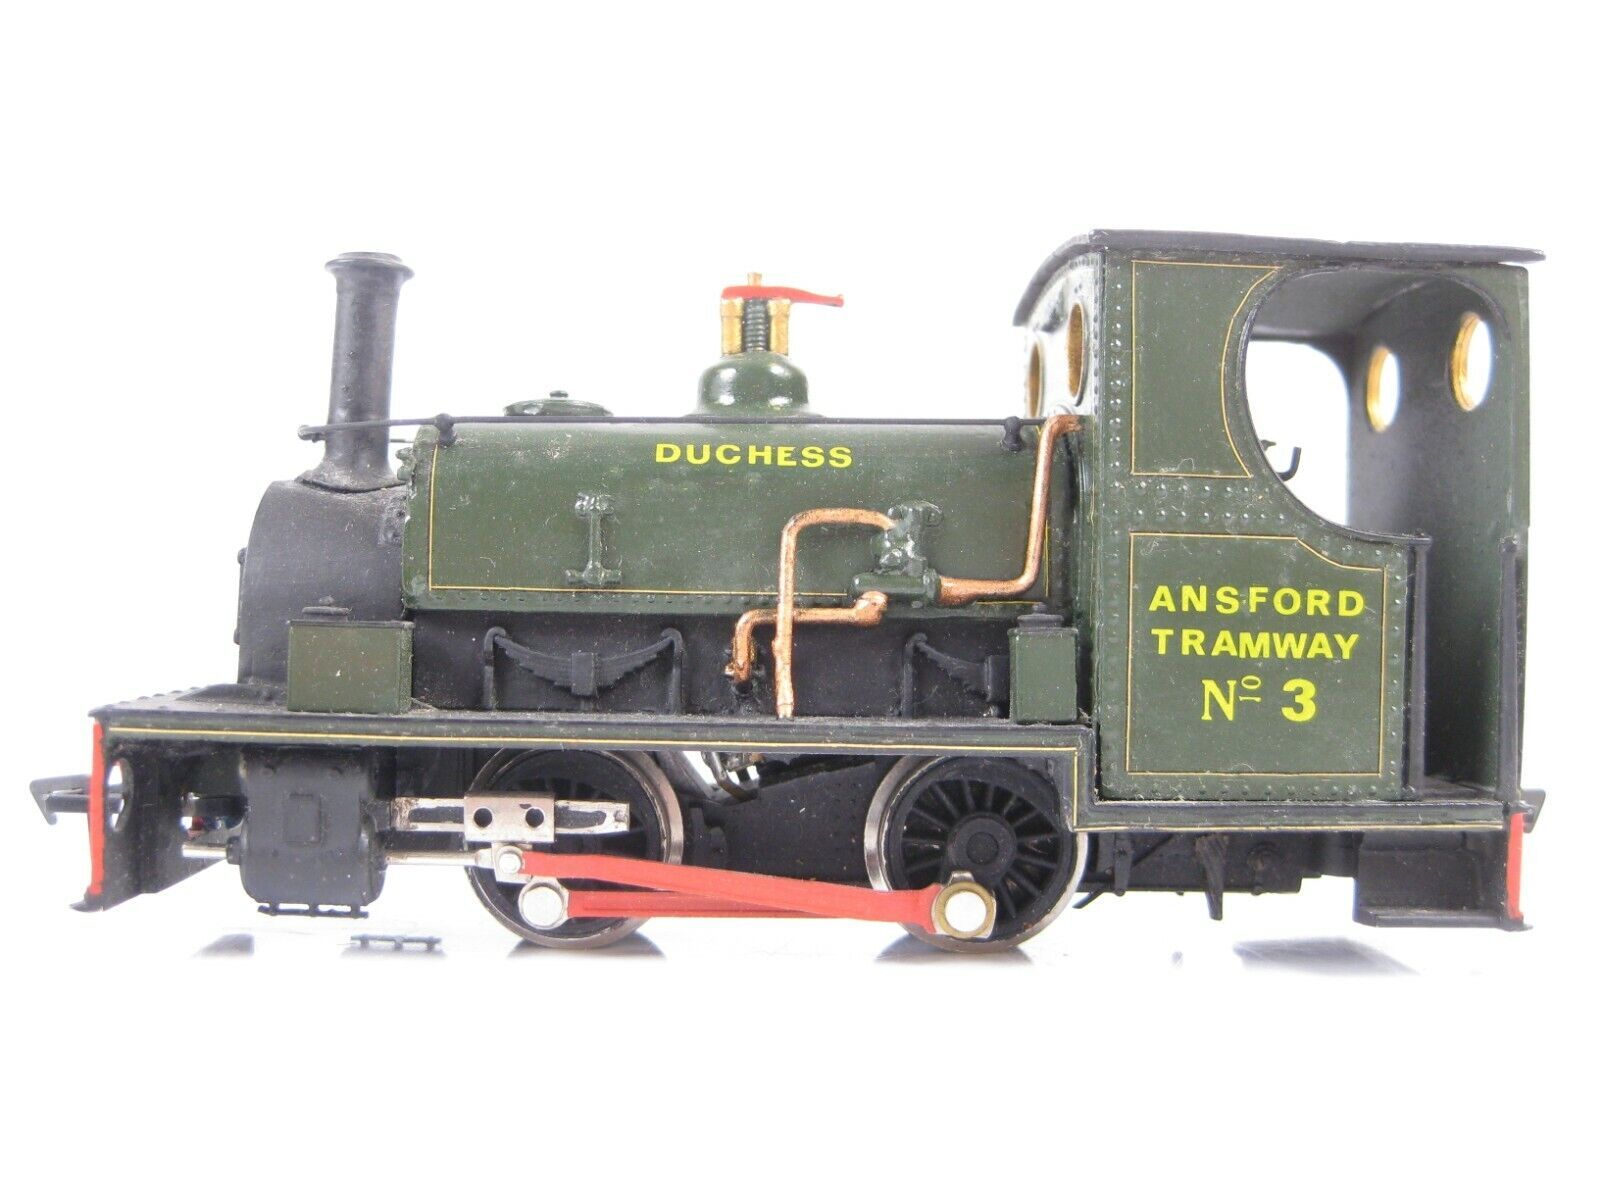 KIT BUILT OO O NARROW GAUGE 0-4-0 'ANSFORD TRAMWAY NO.3' DUCHESS